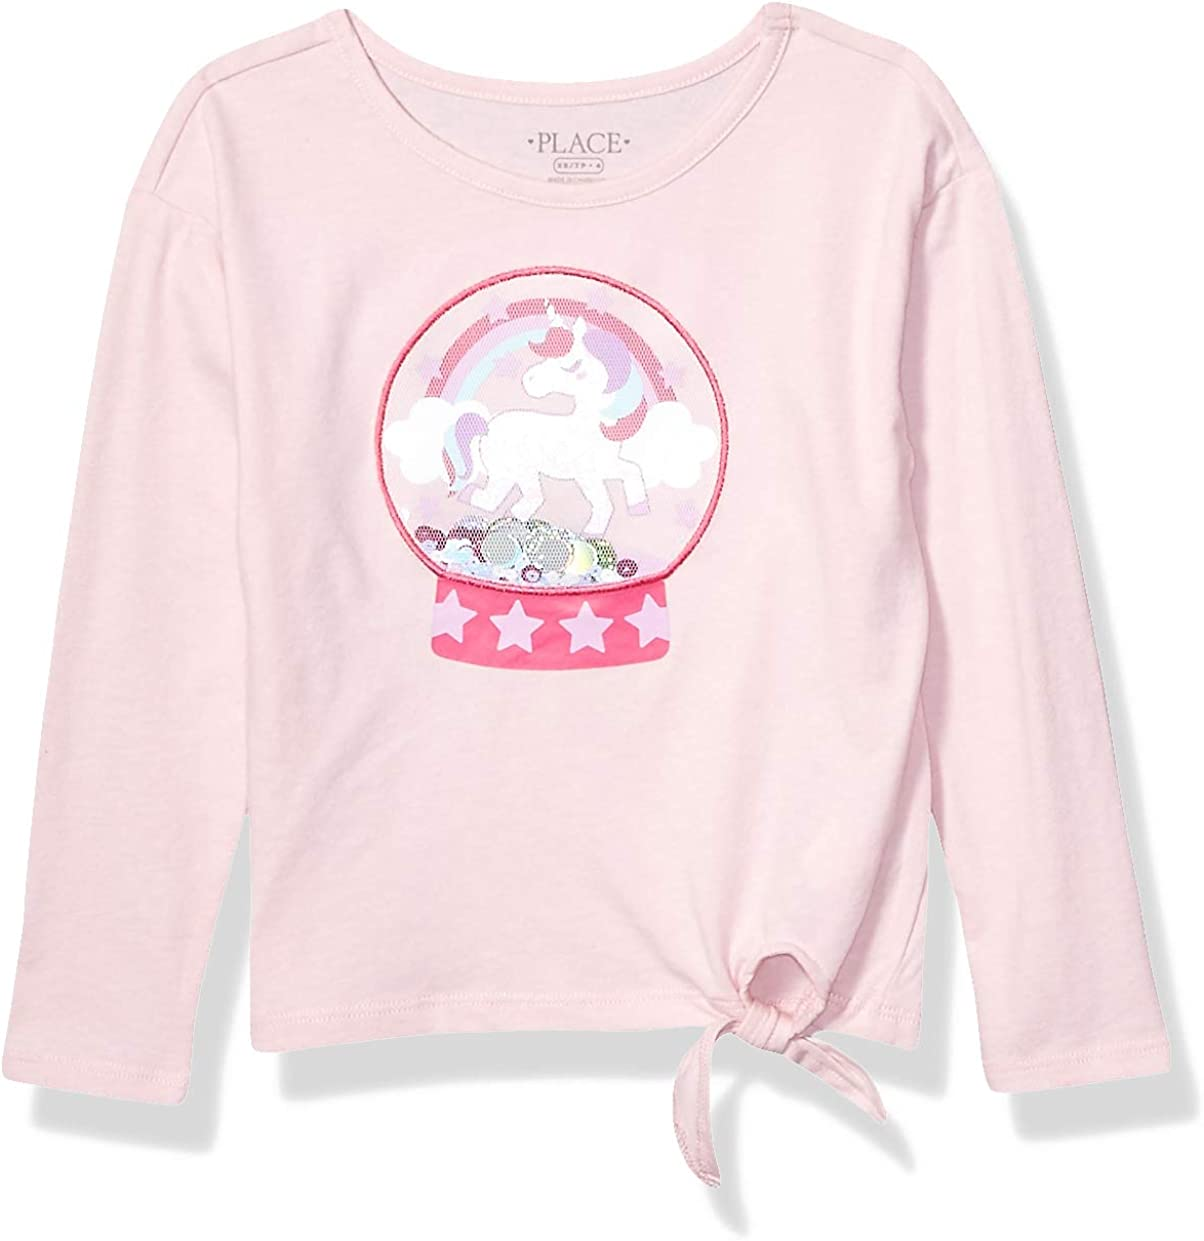 The Children's Place Girls' Big Graphic Tops